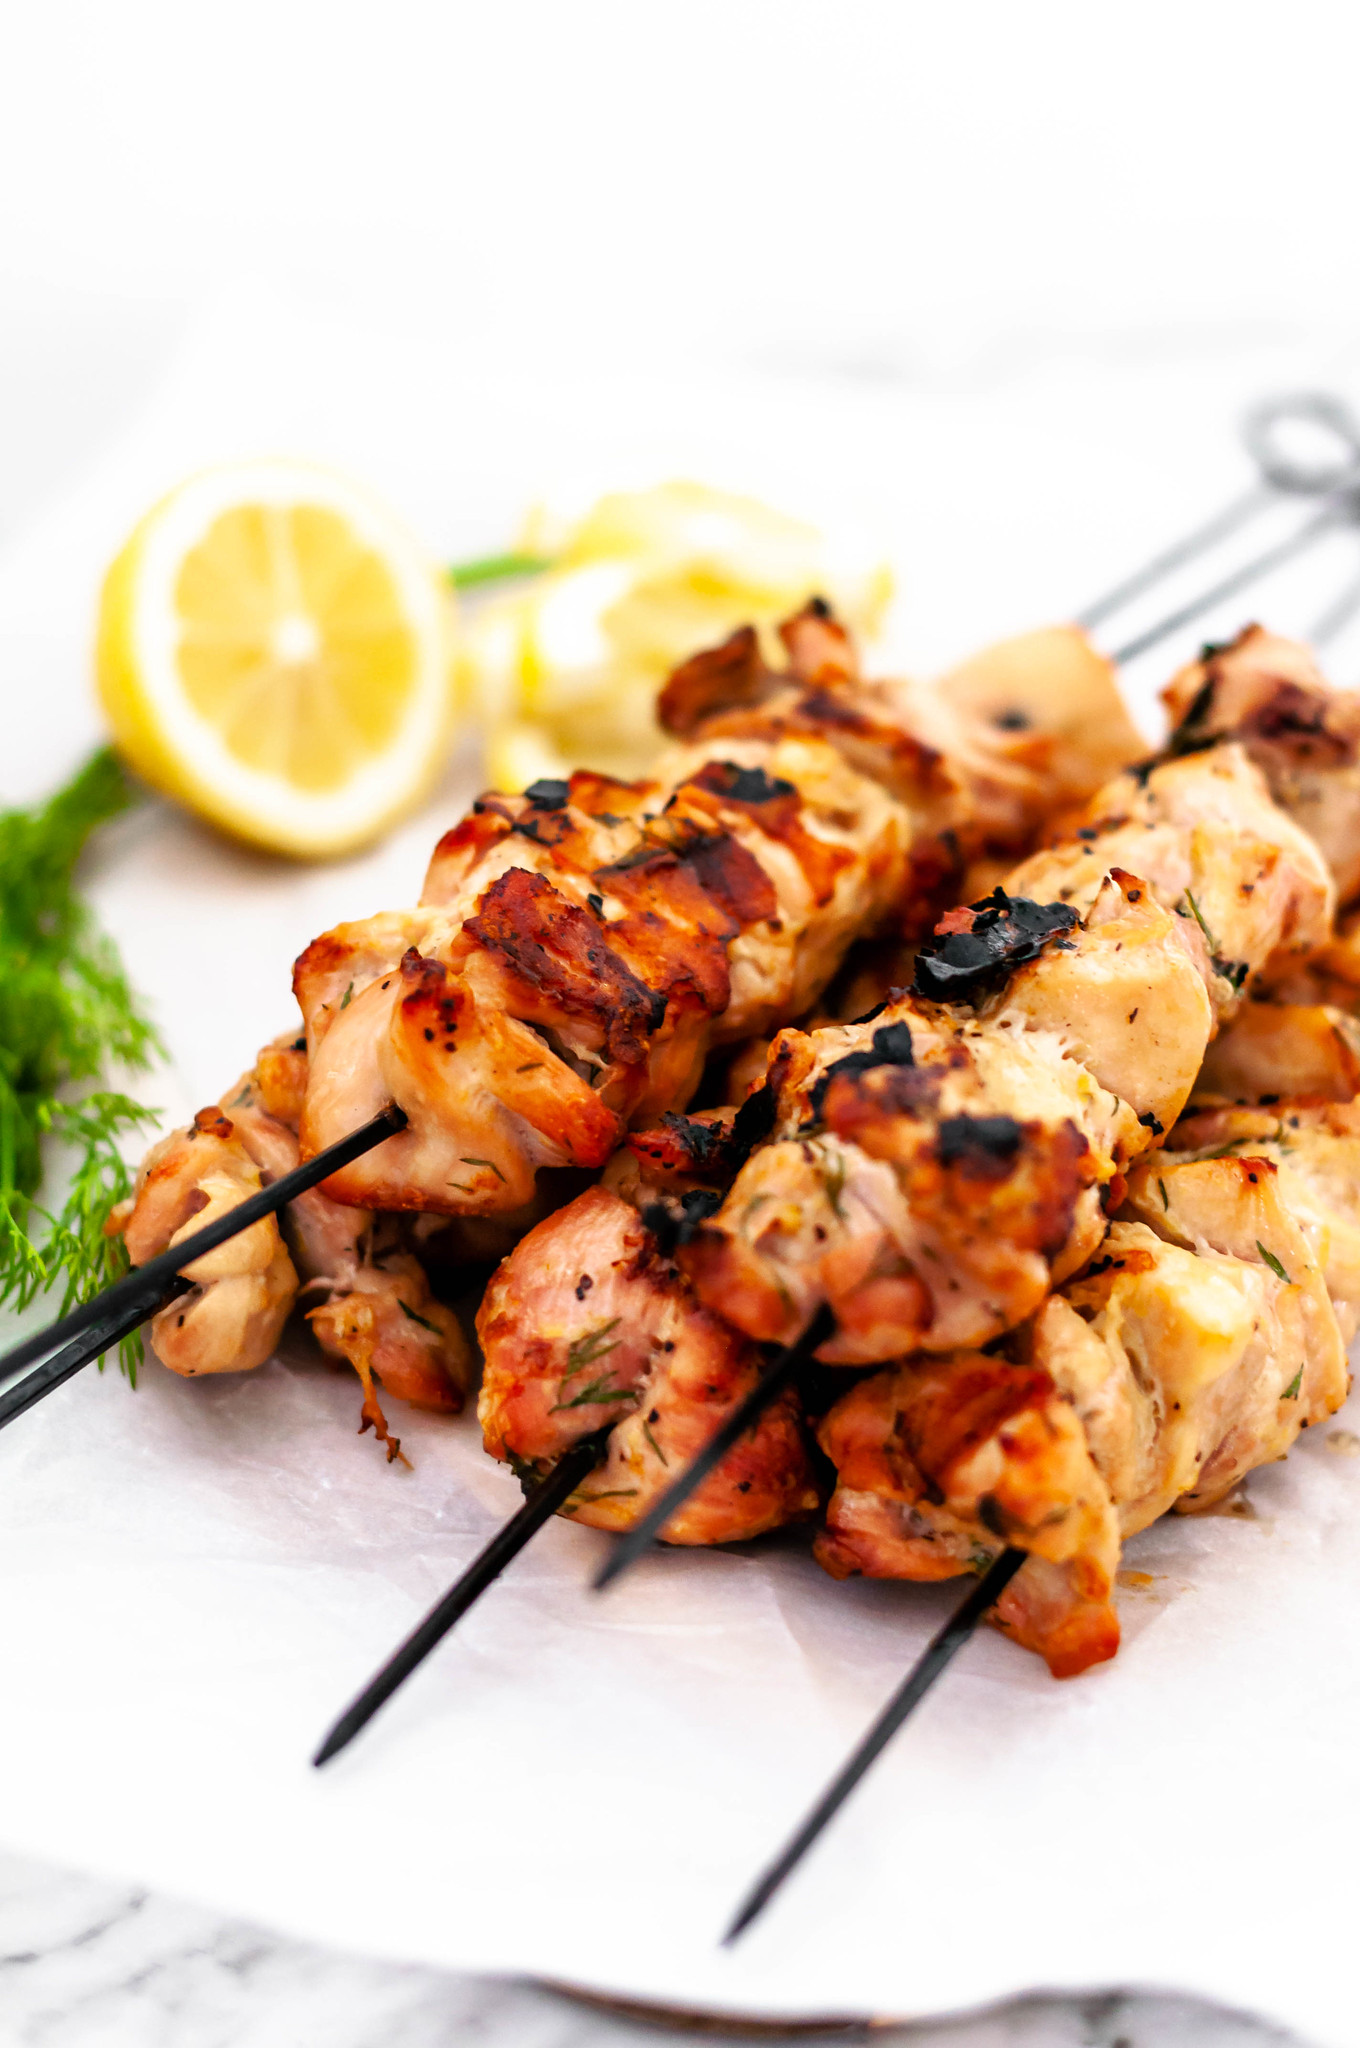 Lemon Dill Chicken Skewers are super simple weeknight meal to throw on the grill. Chicken marinated in lemon juice and zest, fresh dill, garlic, salt and pepper. Packed full of citrusy flavor.